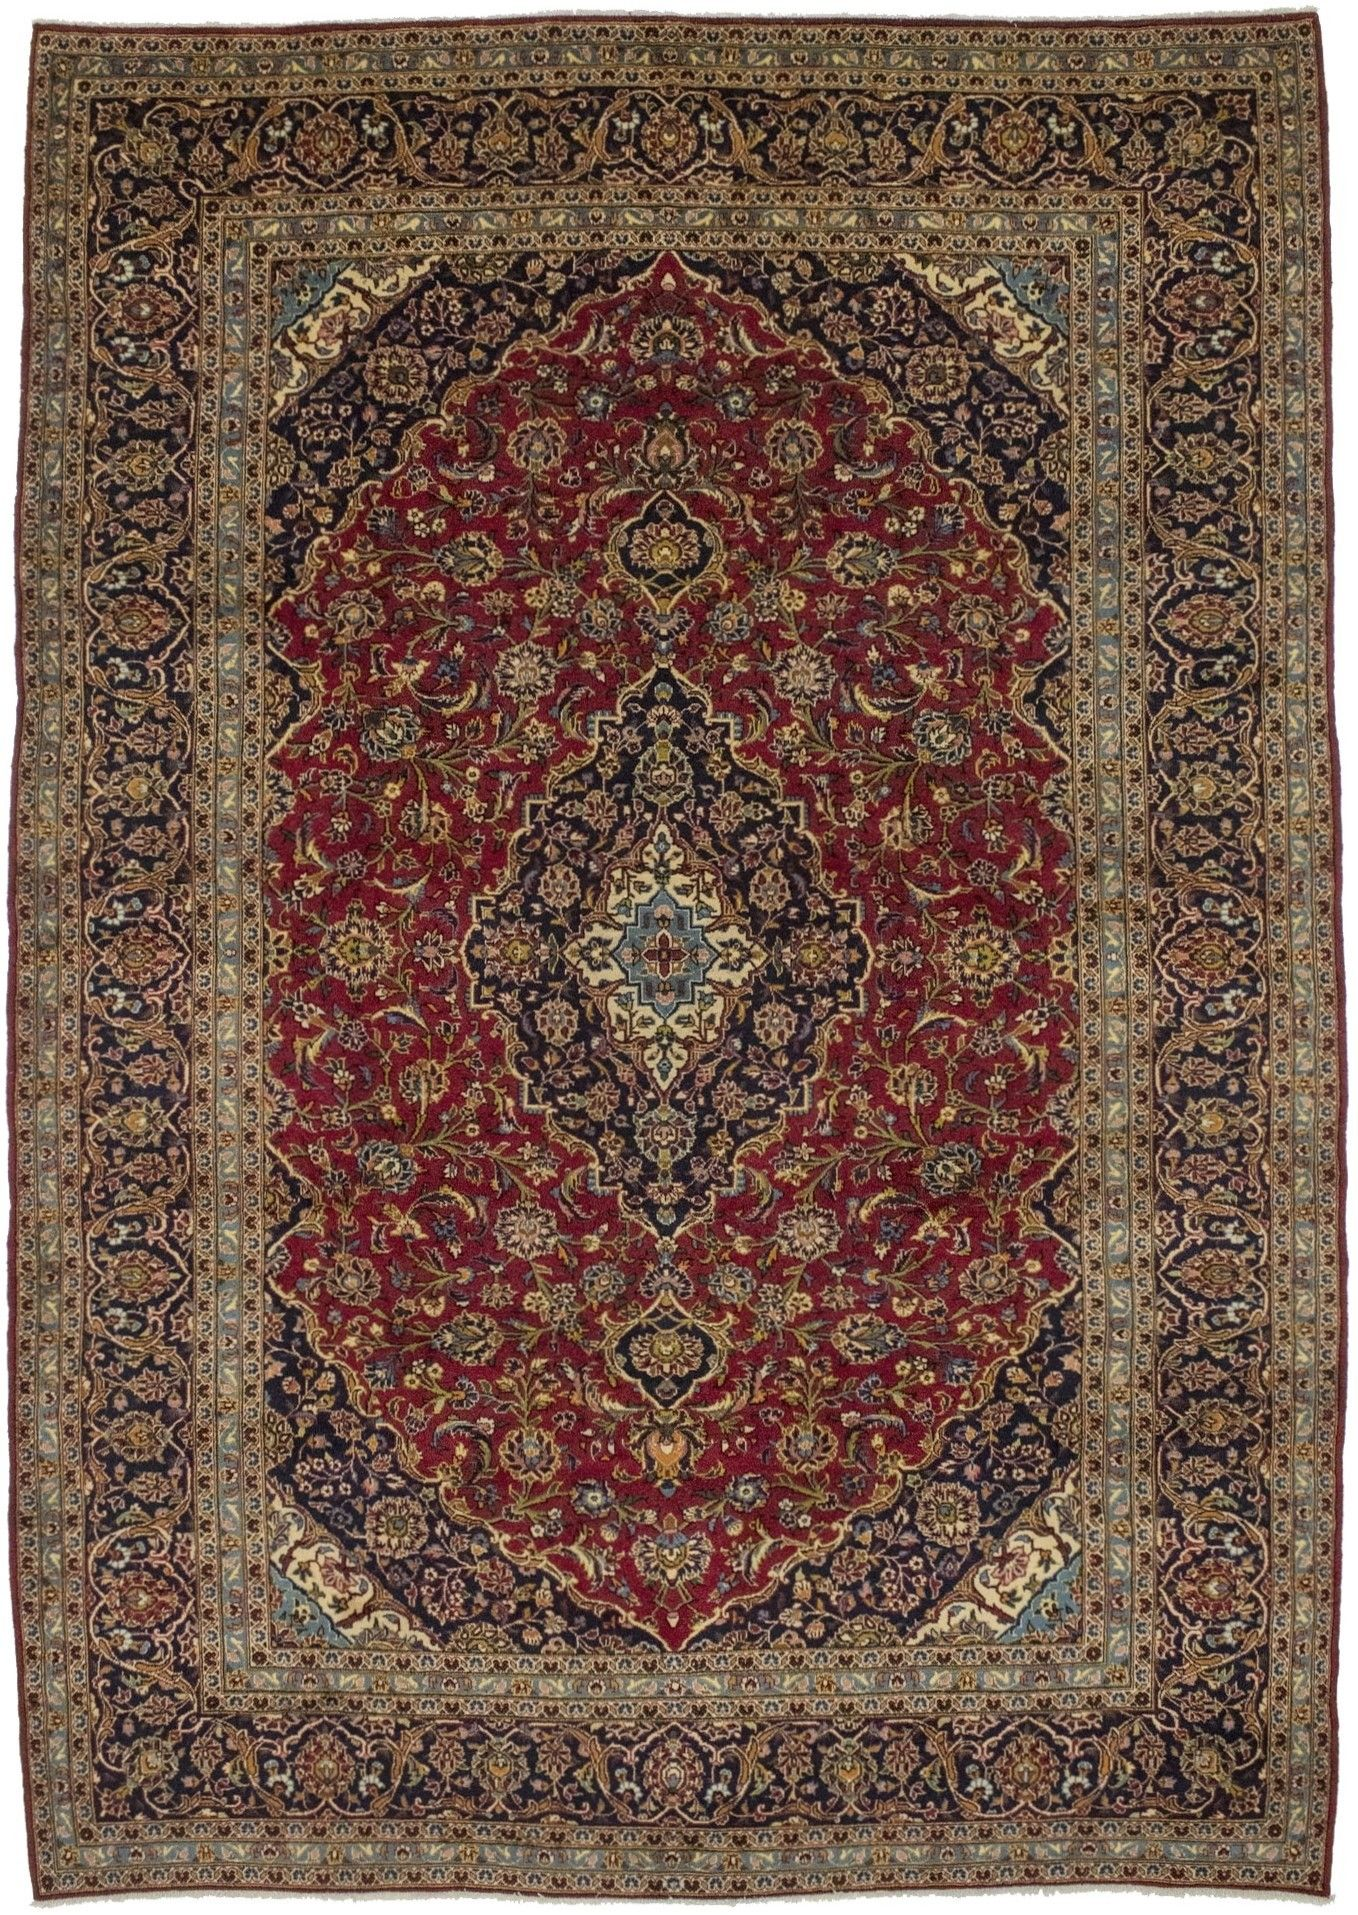 Antique Persian Rugs Nice Traditional Vintage Hand Knotted